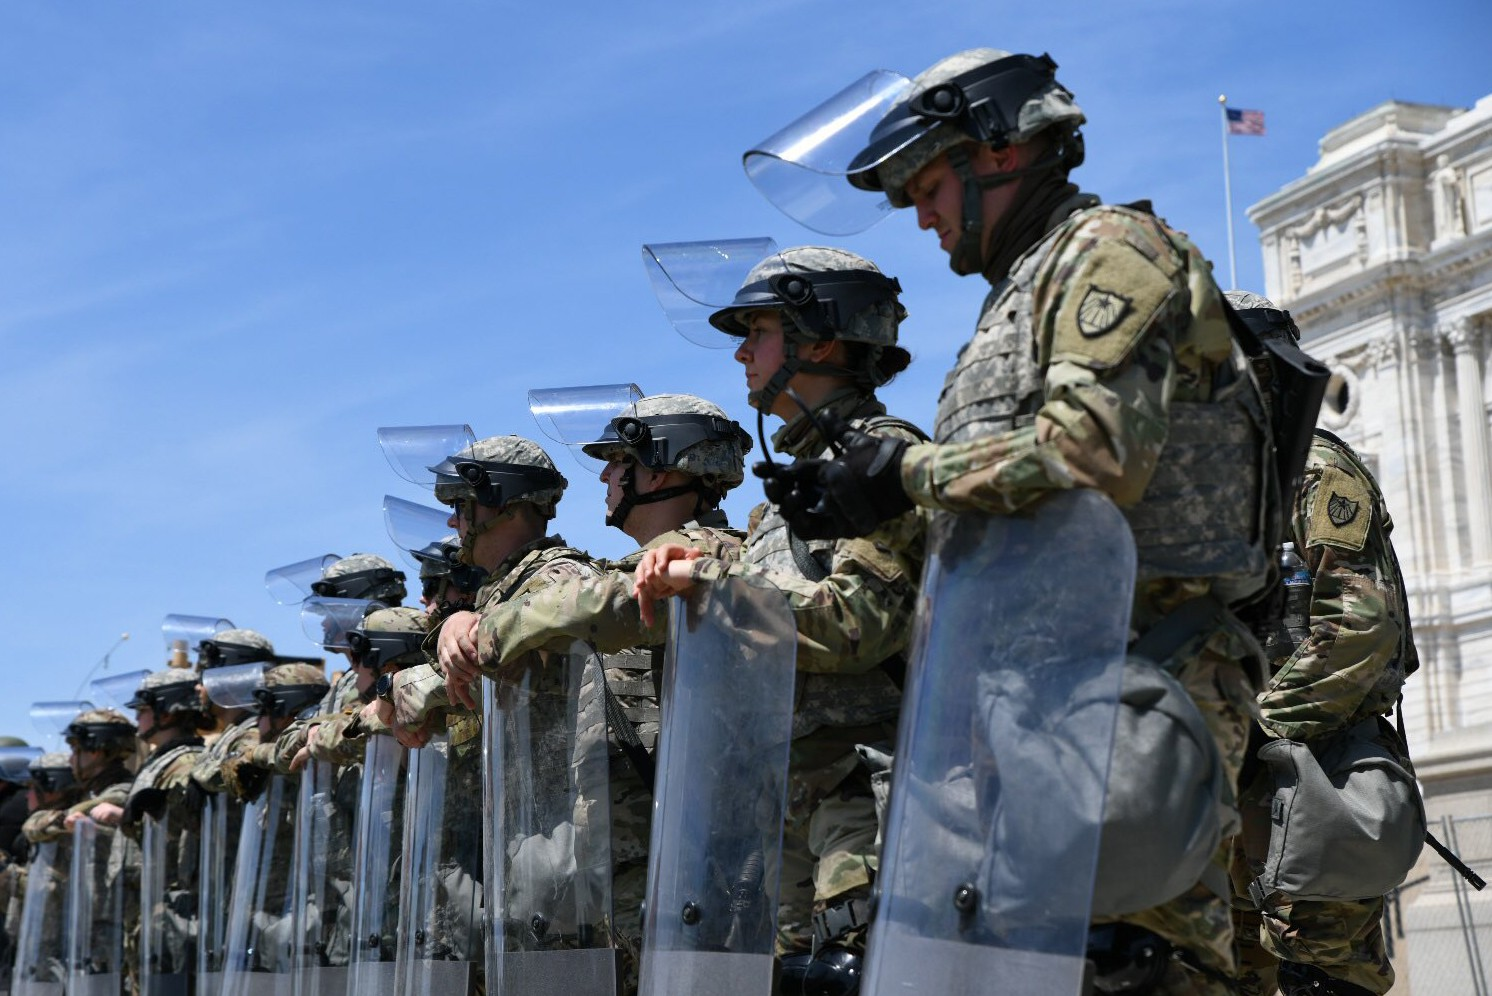 National Guard soldiers with riot shields form a line in front of the Minnesota State Capitol on Sunday, May 31.